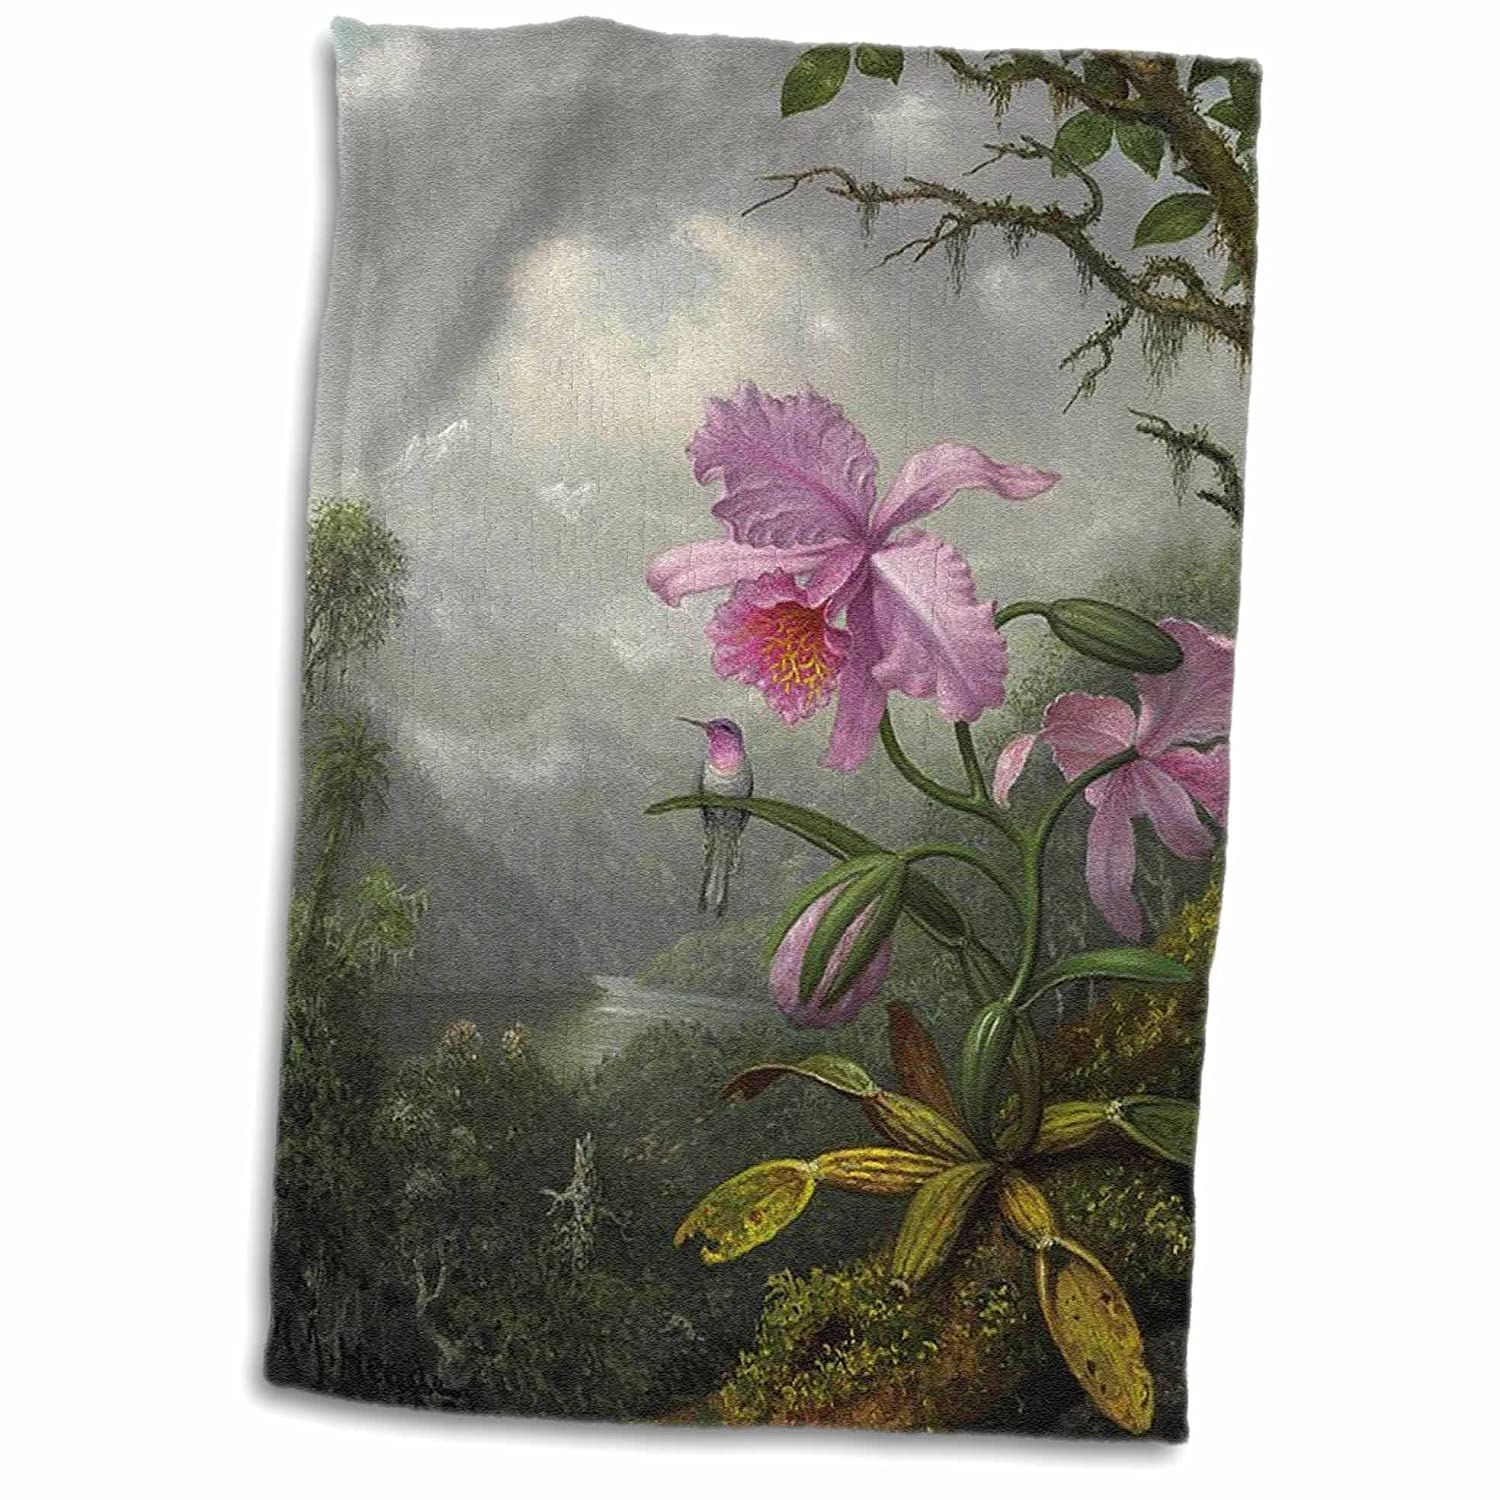 3D Rose Image of Heades 1800S Painting Hummingbird On Orchid Hand Towel 15\' x 22\'